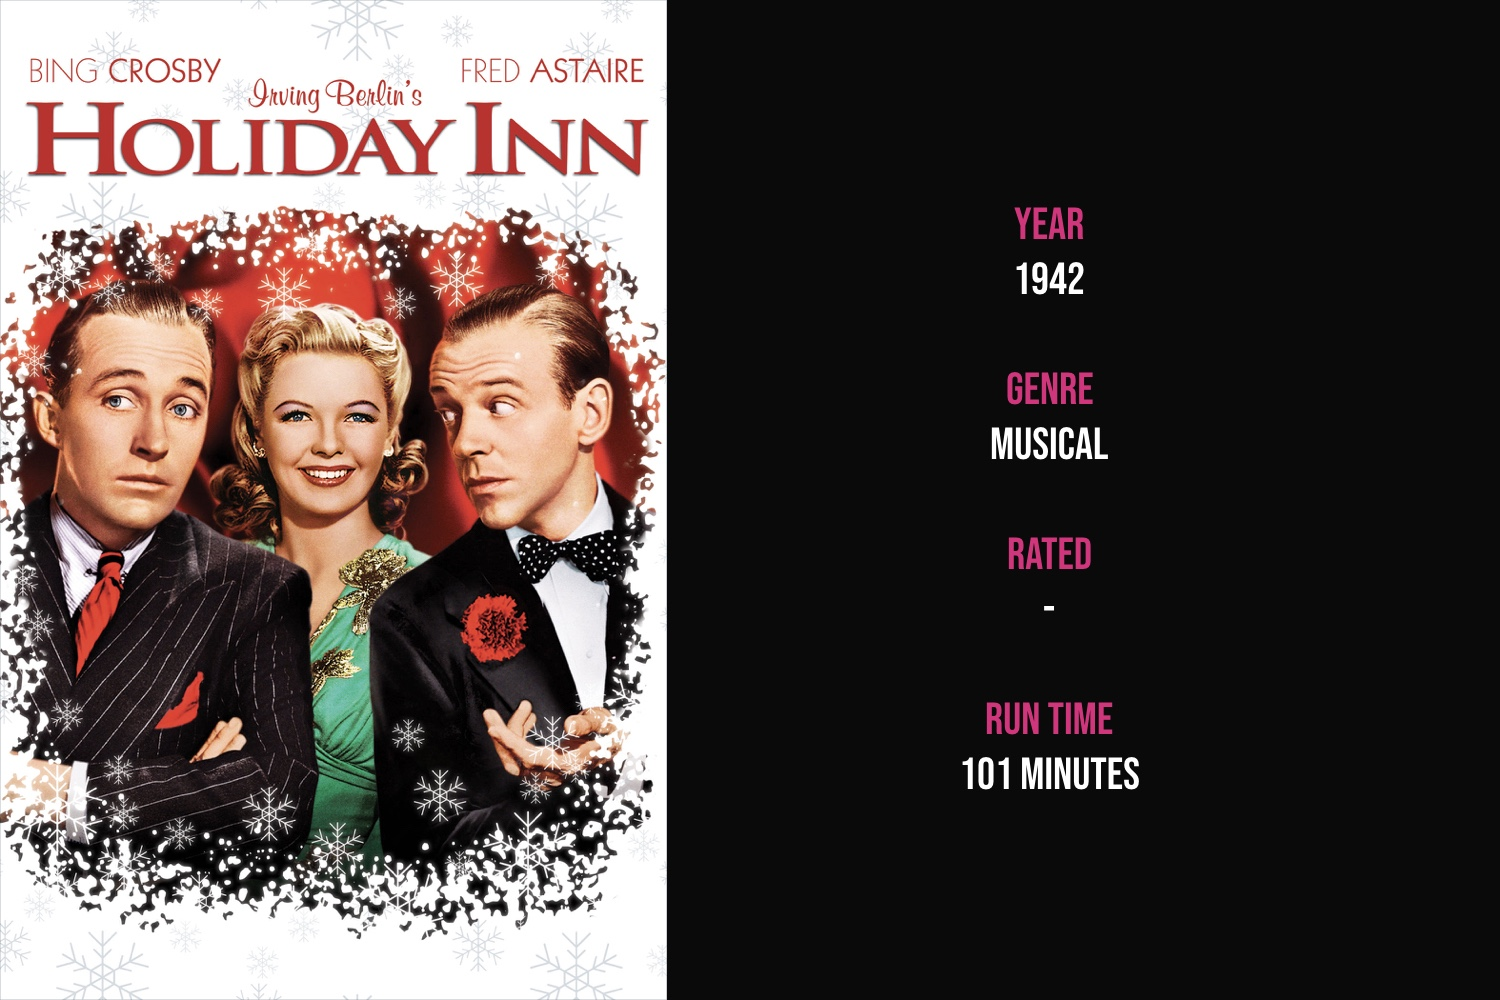 Holiday Inn - A musical comedy about two song and dance men vying for the affection of the same woman at an inn that's only open on holidays.iTunes | Amazon